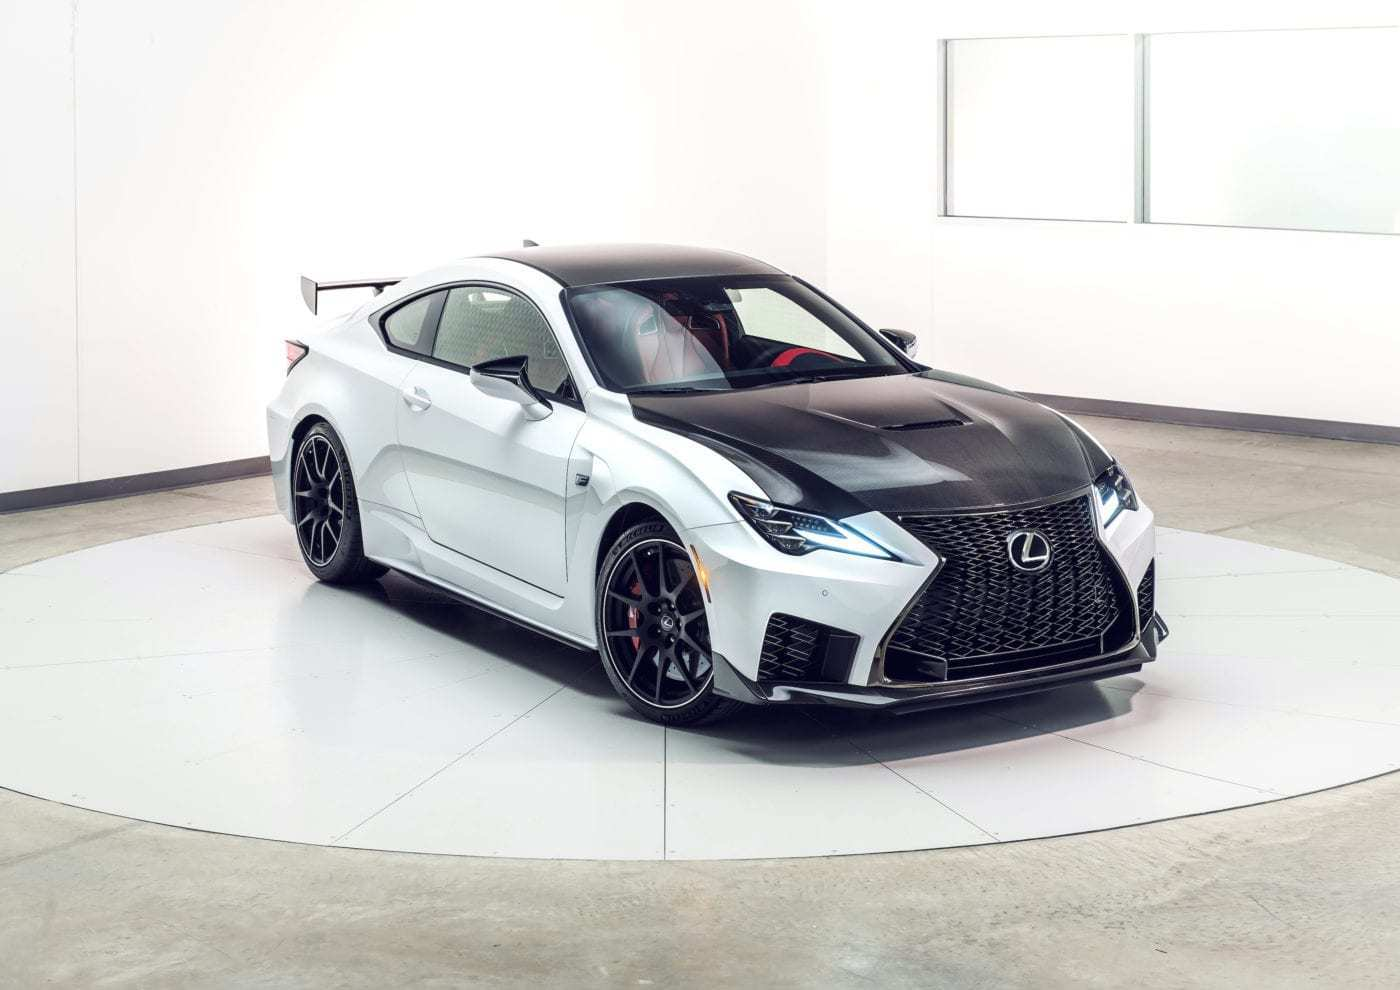 80 Concept of 2020 Lexus Rc F Track Edition Release Date with 2020 Lexus Rc F Track Edition